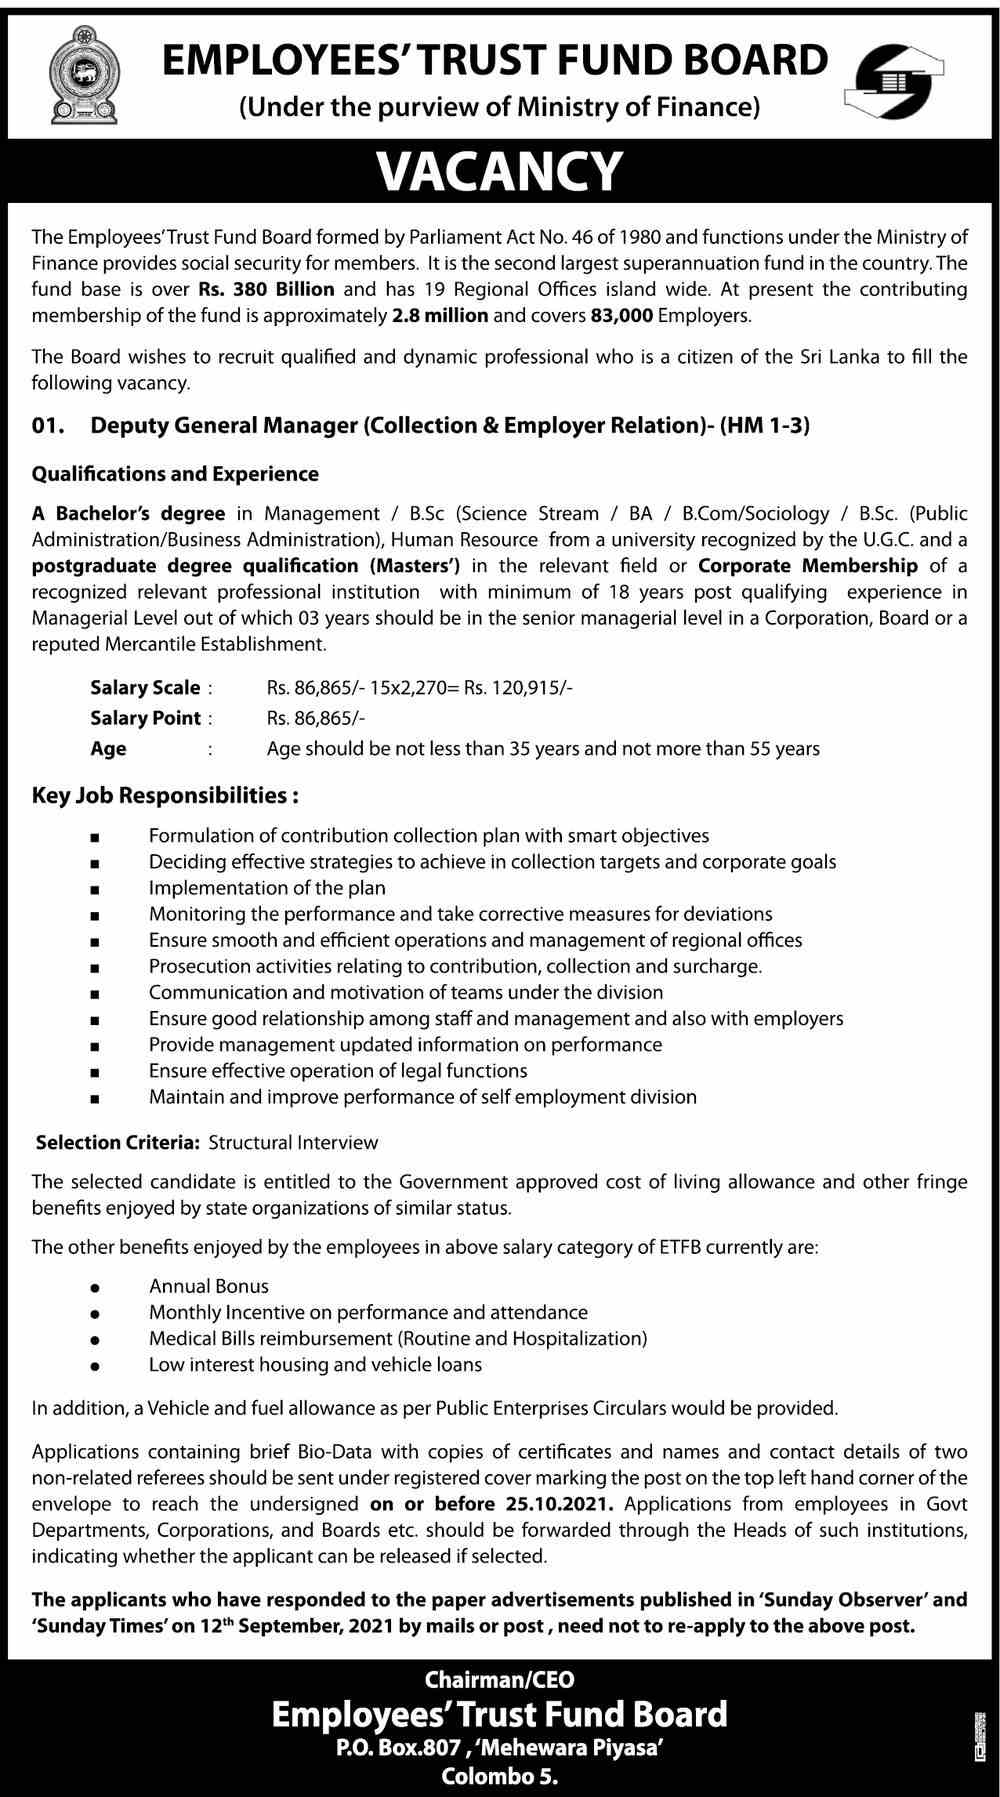 Deputy General Manager Job Vacancy in Employees' Trust Fund Board English